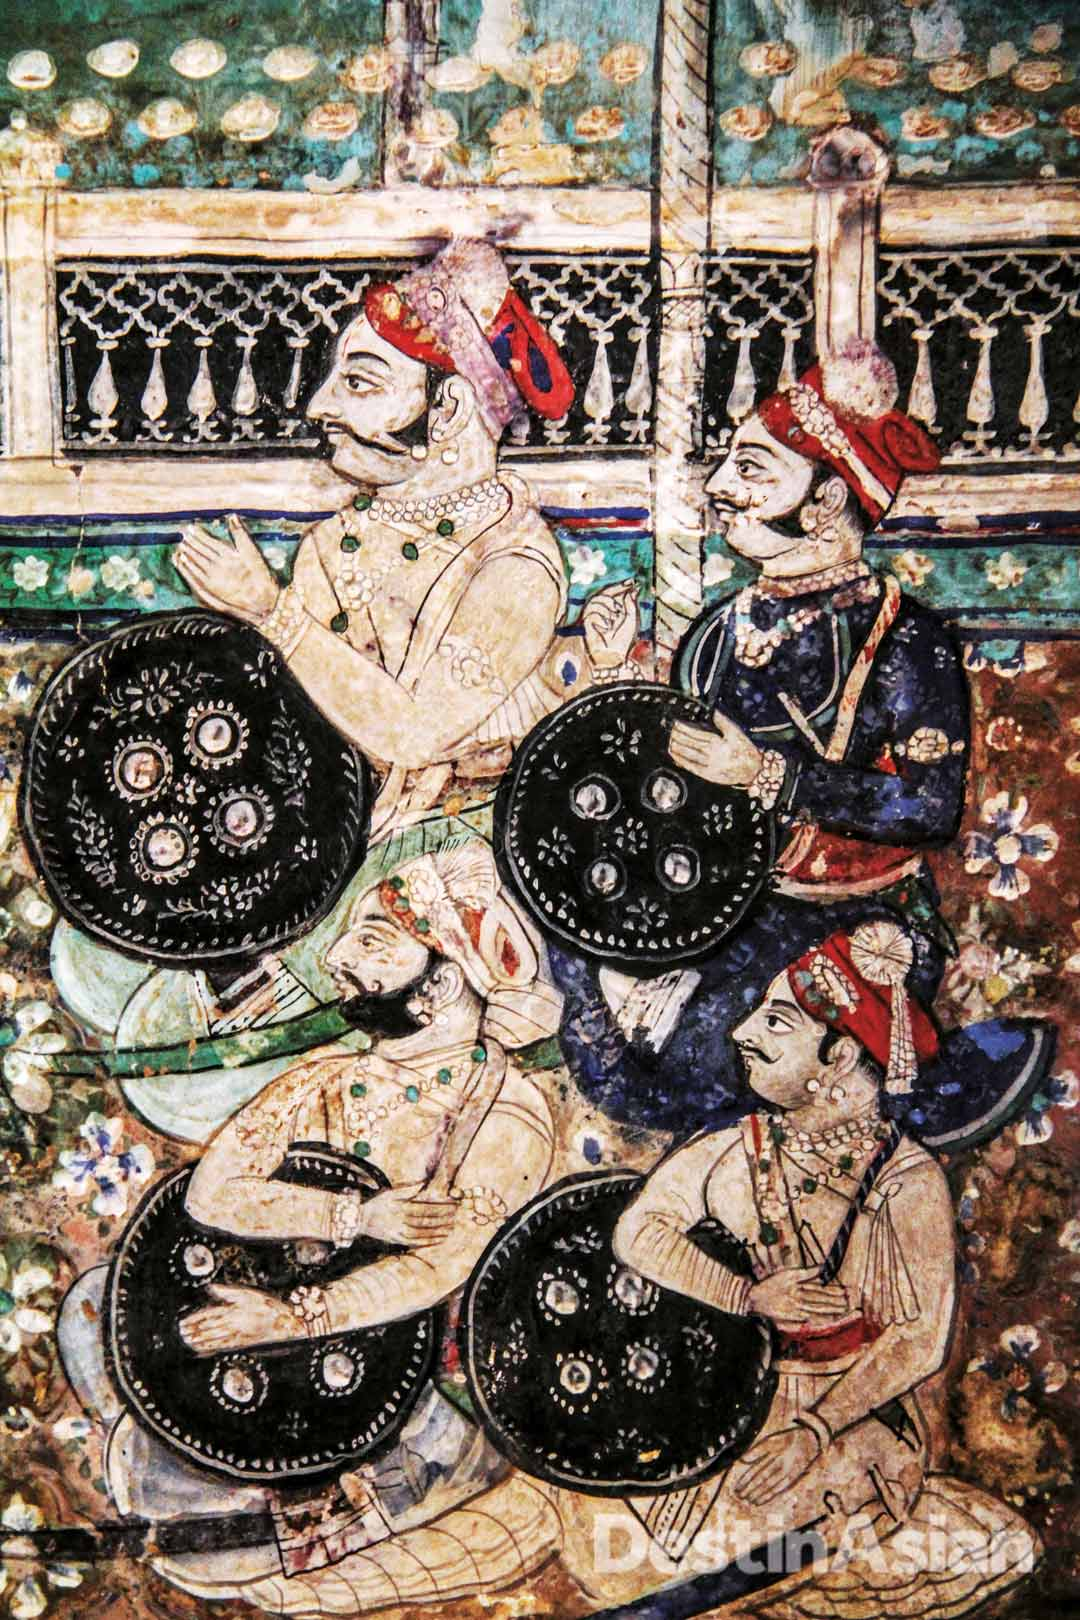 A mural detail in the Chitrashala depicting Rajput warriors during an audience with their raja.